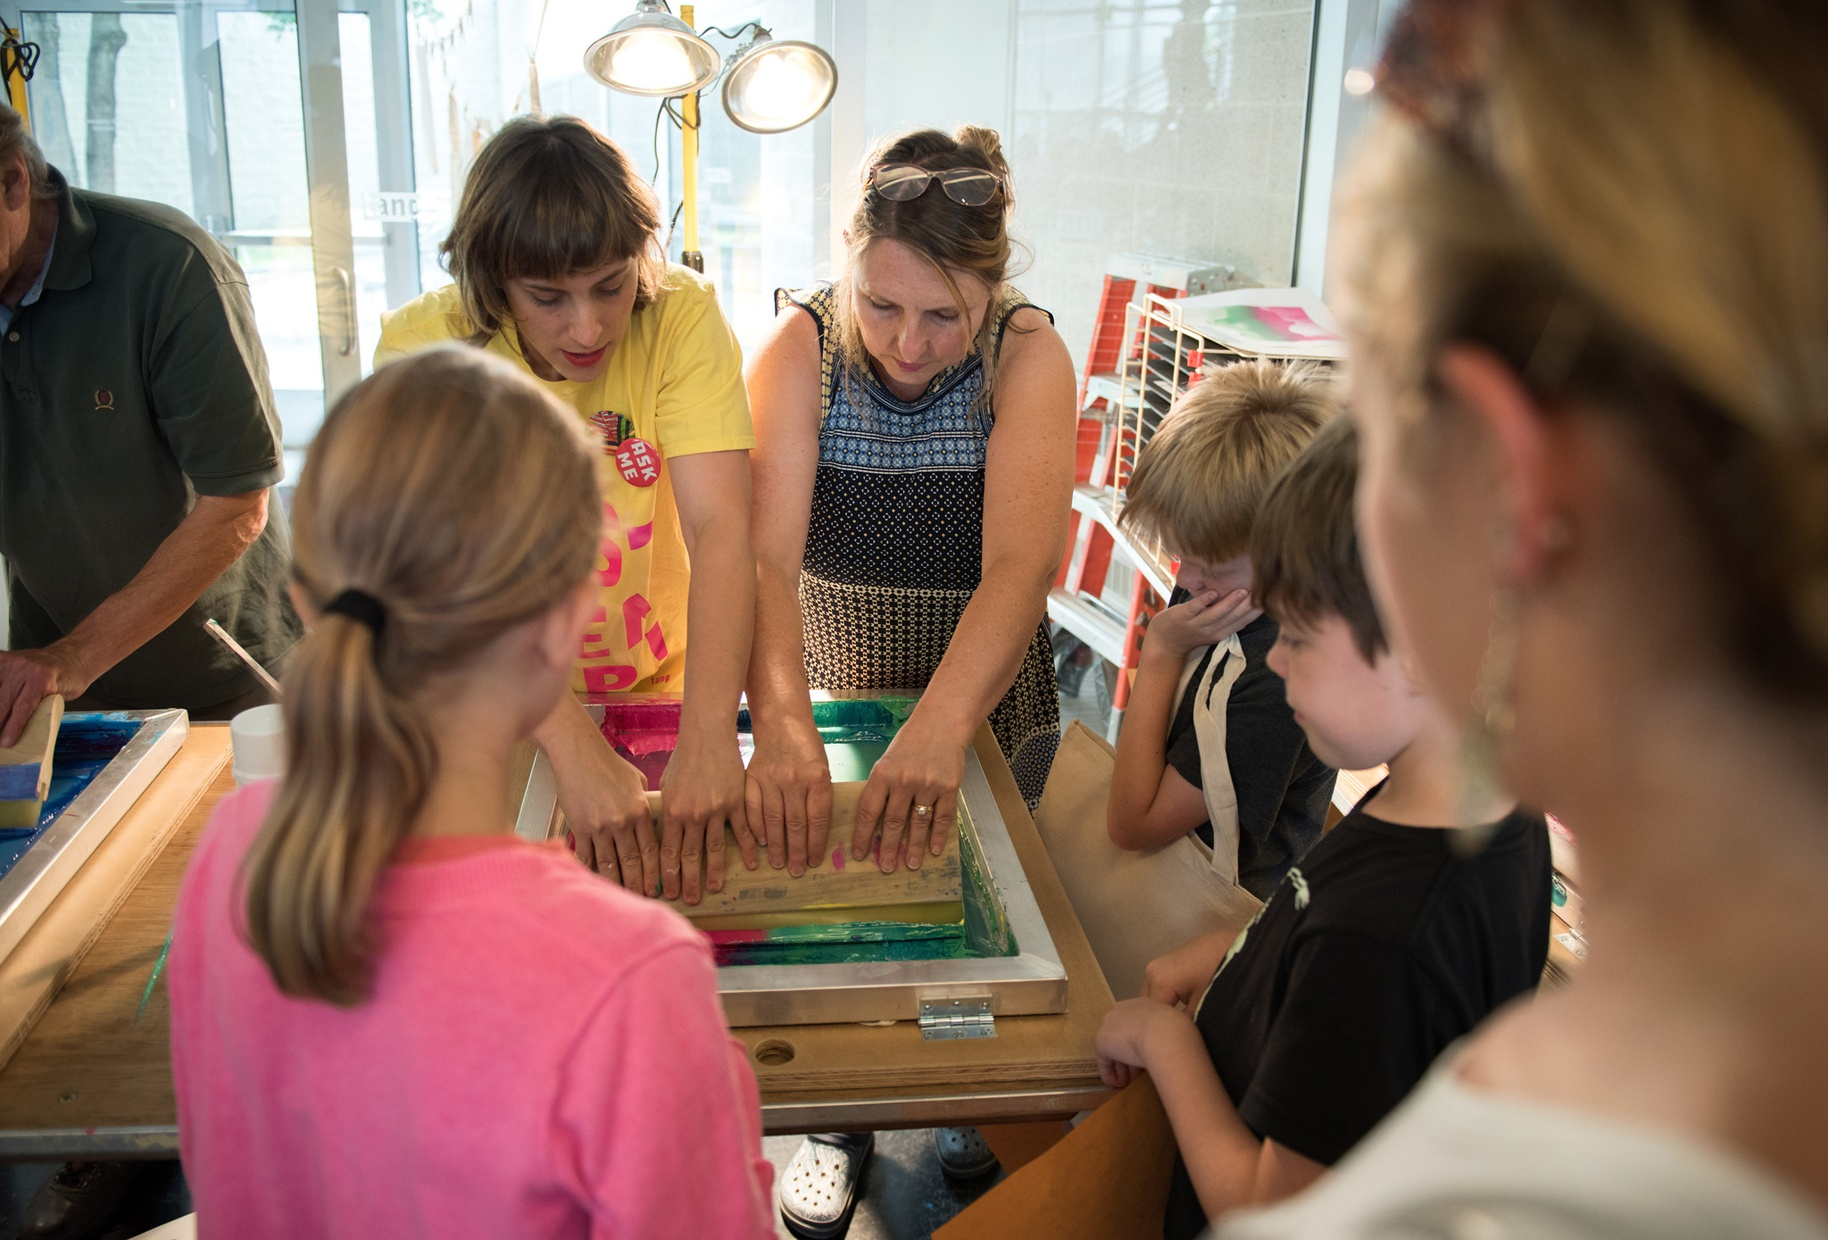 Two white women work on a screenprint while a group of children watch.